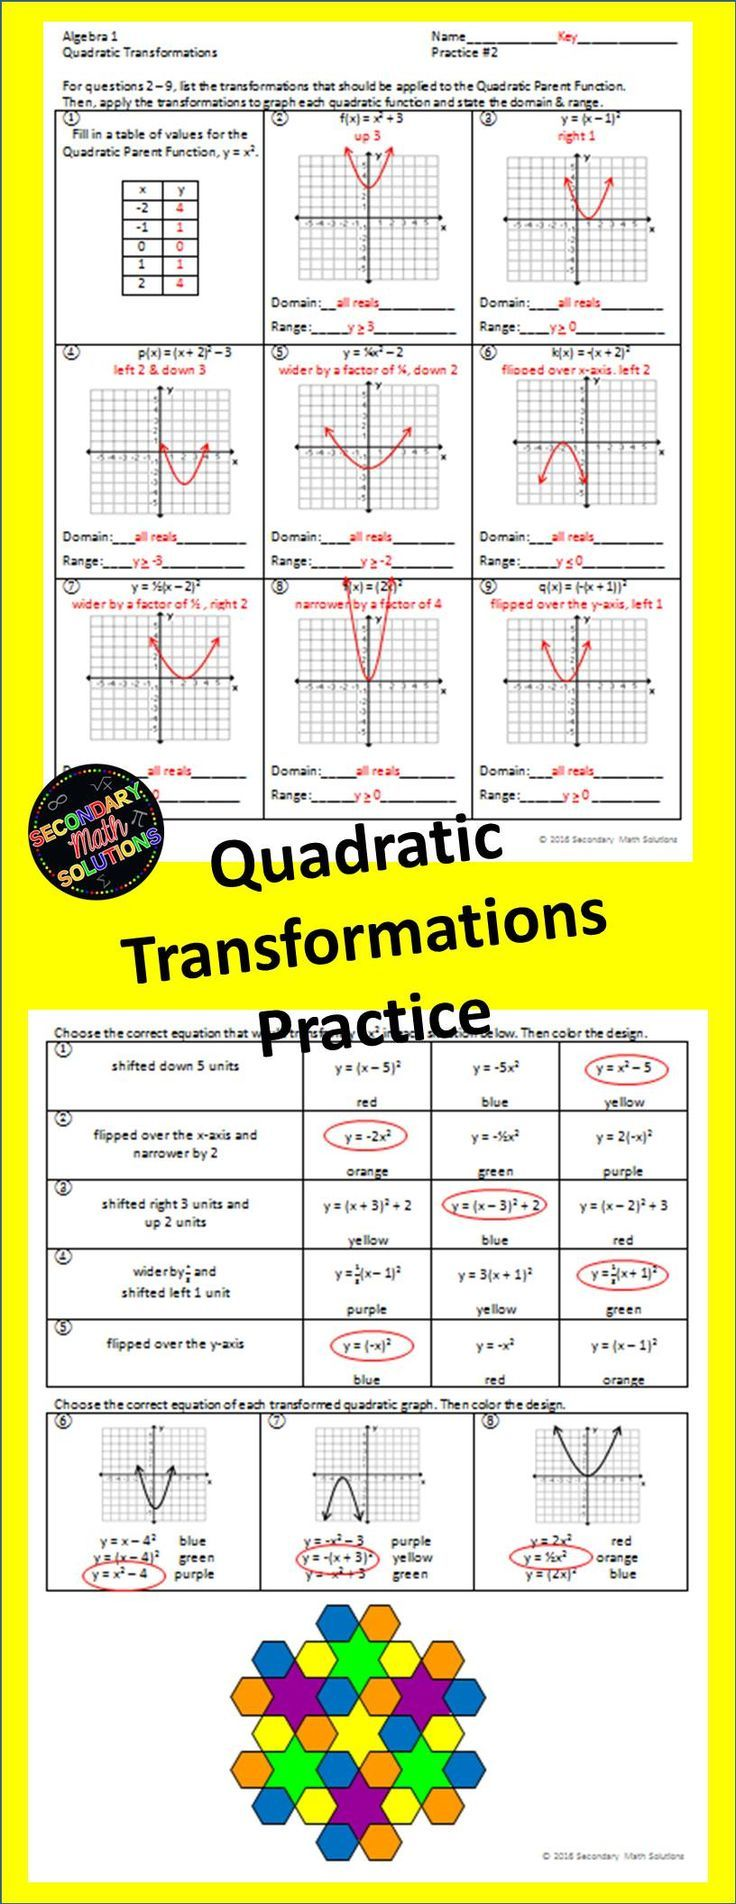 This is a double-sided practice page covering all of theQuadratic Transformations: up, down, right, left, narrower, wider, flip over x-axis and flip over y-axis. On the front, the first question asks the student to fill in a table of values for the quadratic parent function. Then, questions 2 through 9 have the student list the transformations and graph a transformed quadratic. Each equation contains either one or two transformations.